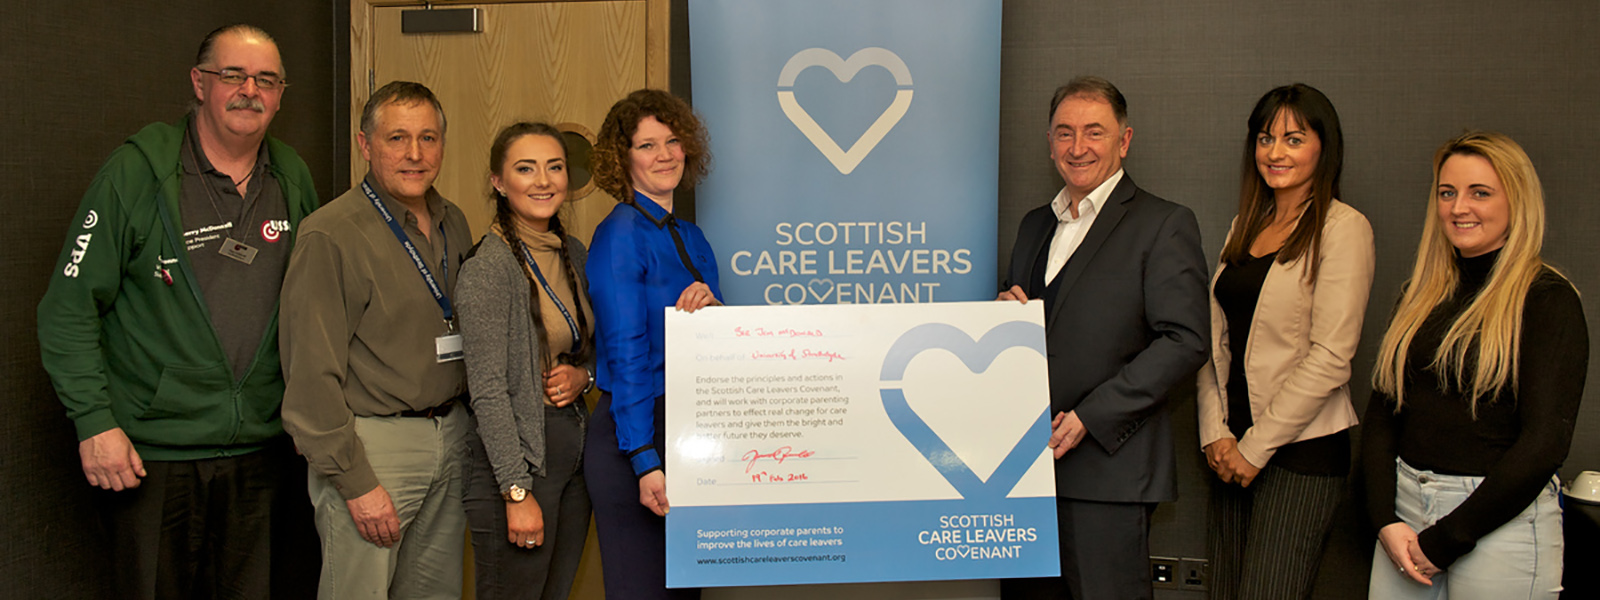 Professor Sir Jim McDonald signs the Scottish Care Leavers' Covenant on behalf of the University of Strathclyde